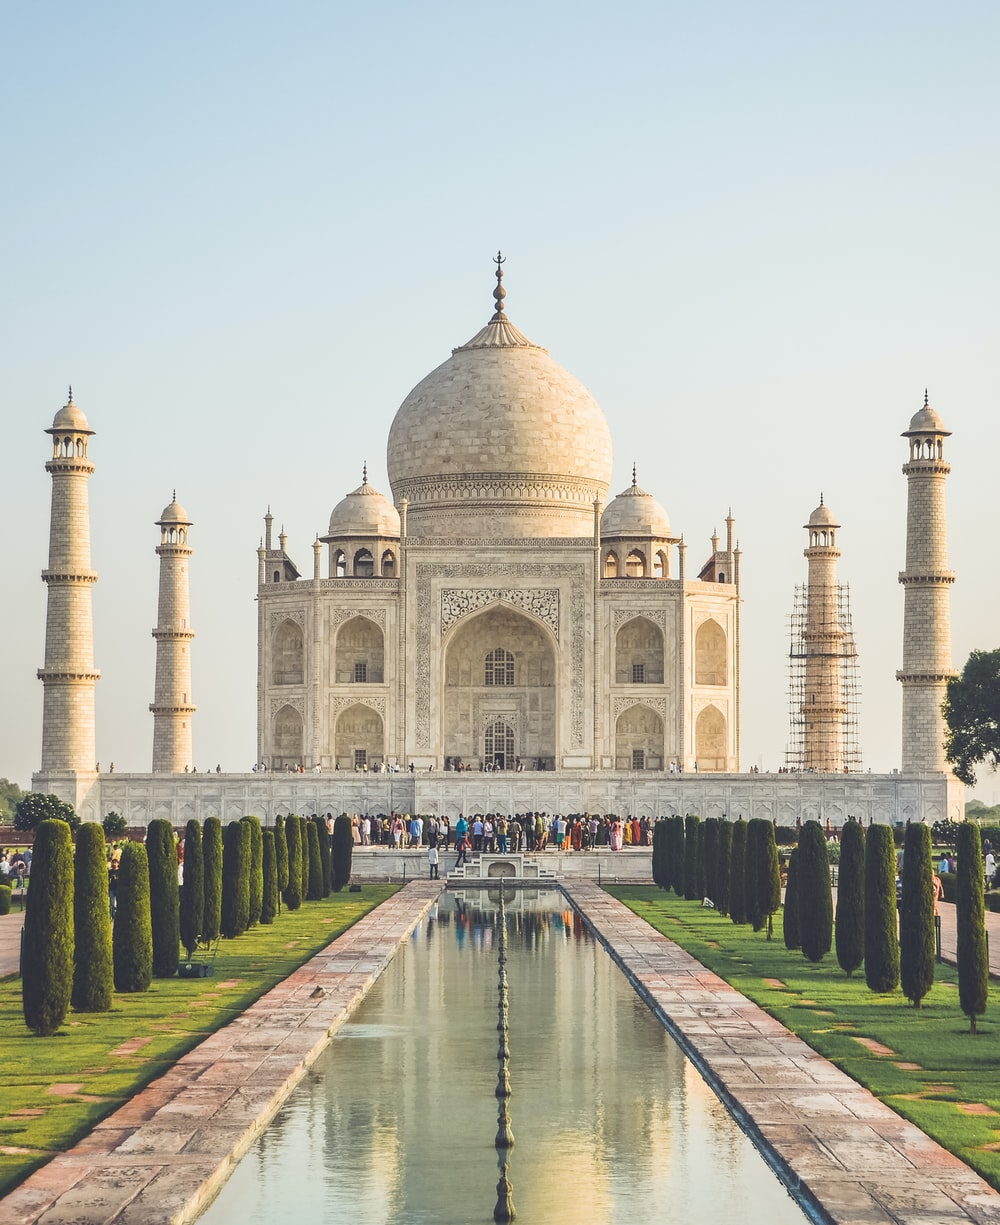 500+ Taj Mahal Agra India Pictures [HD] | Download Free